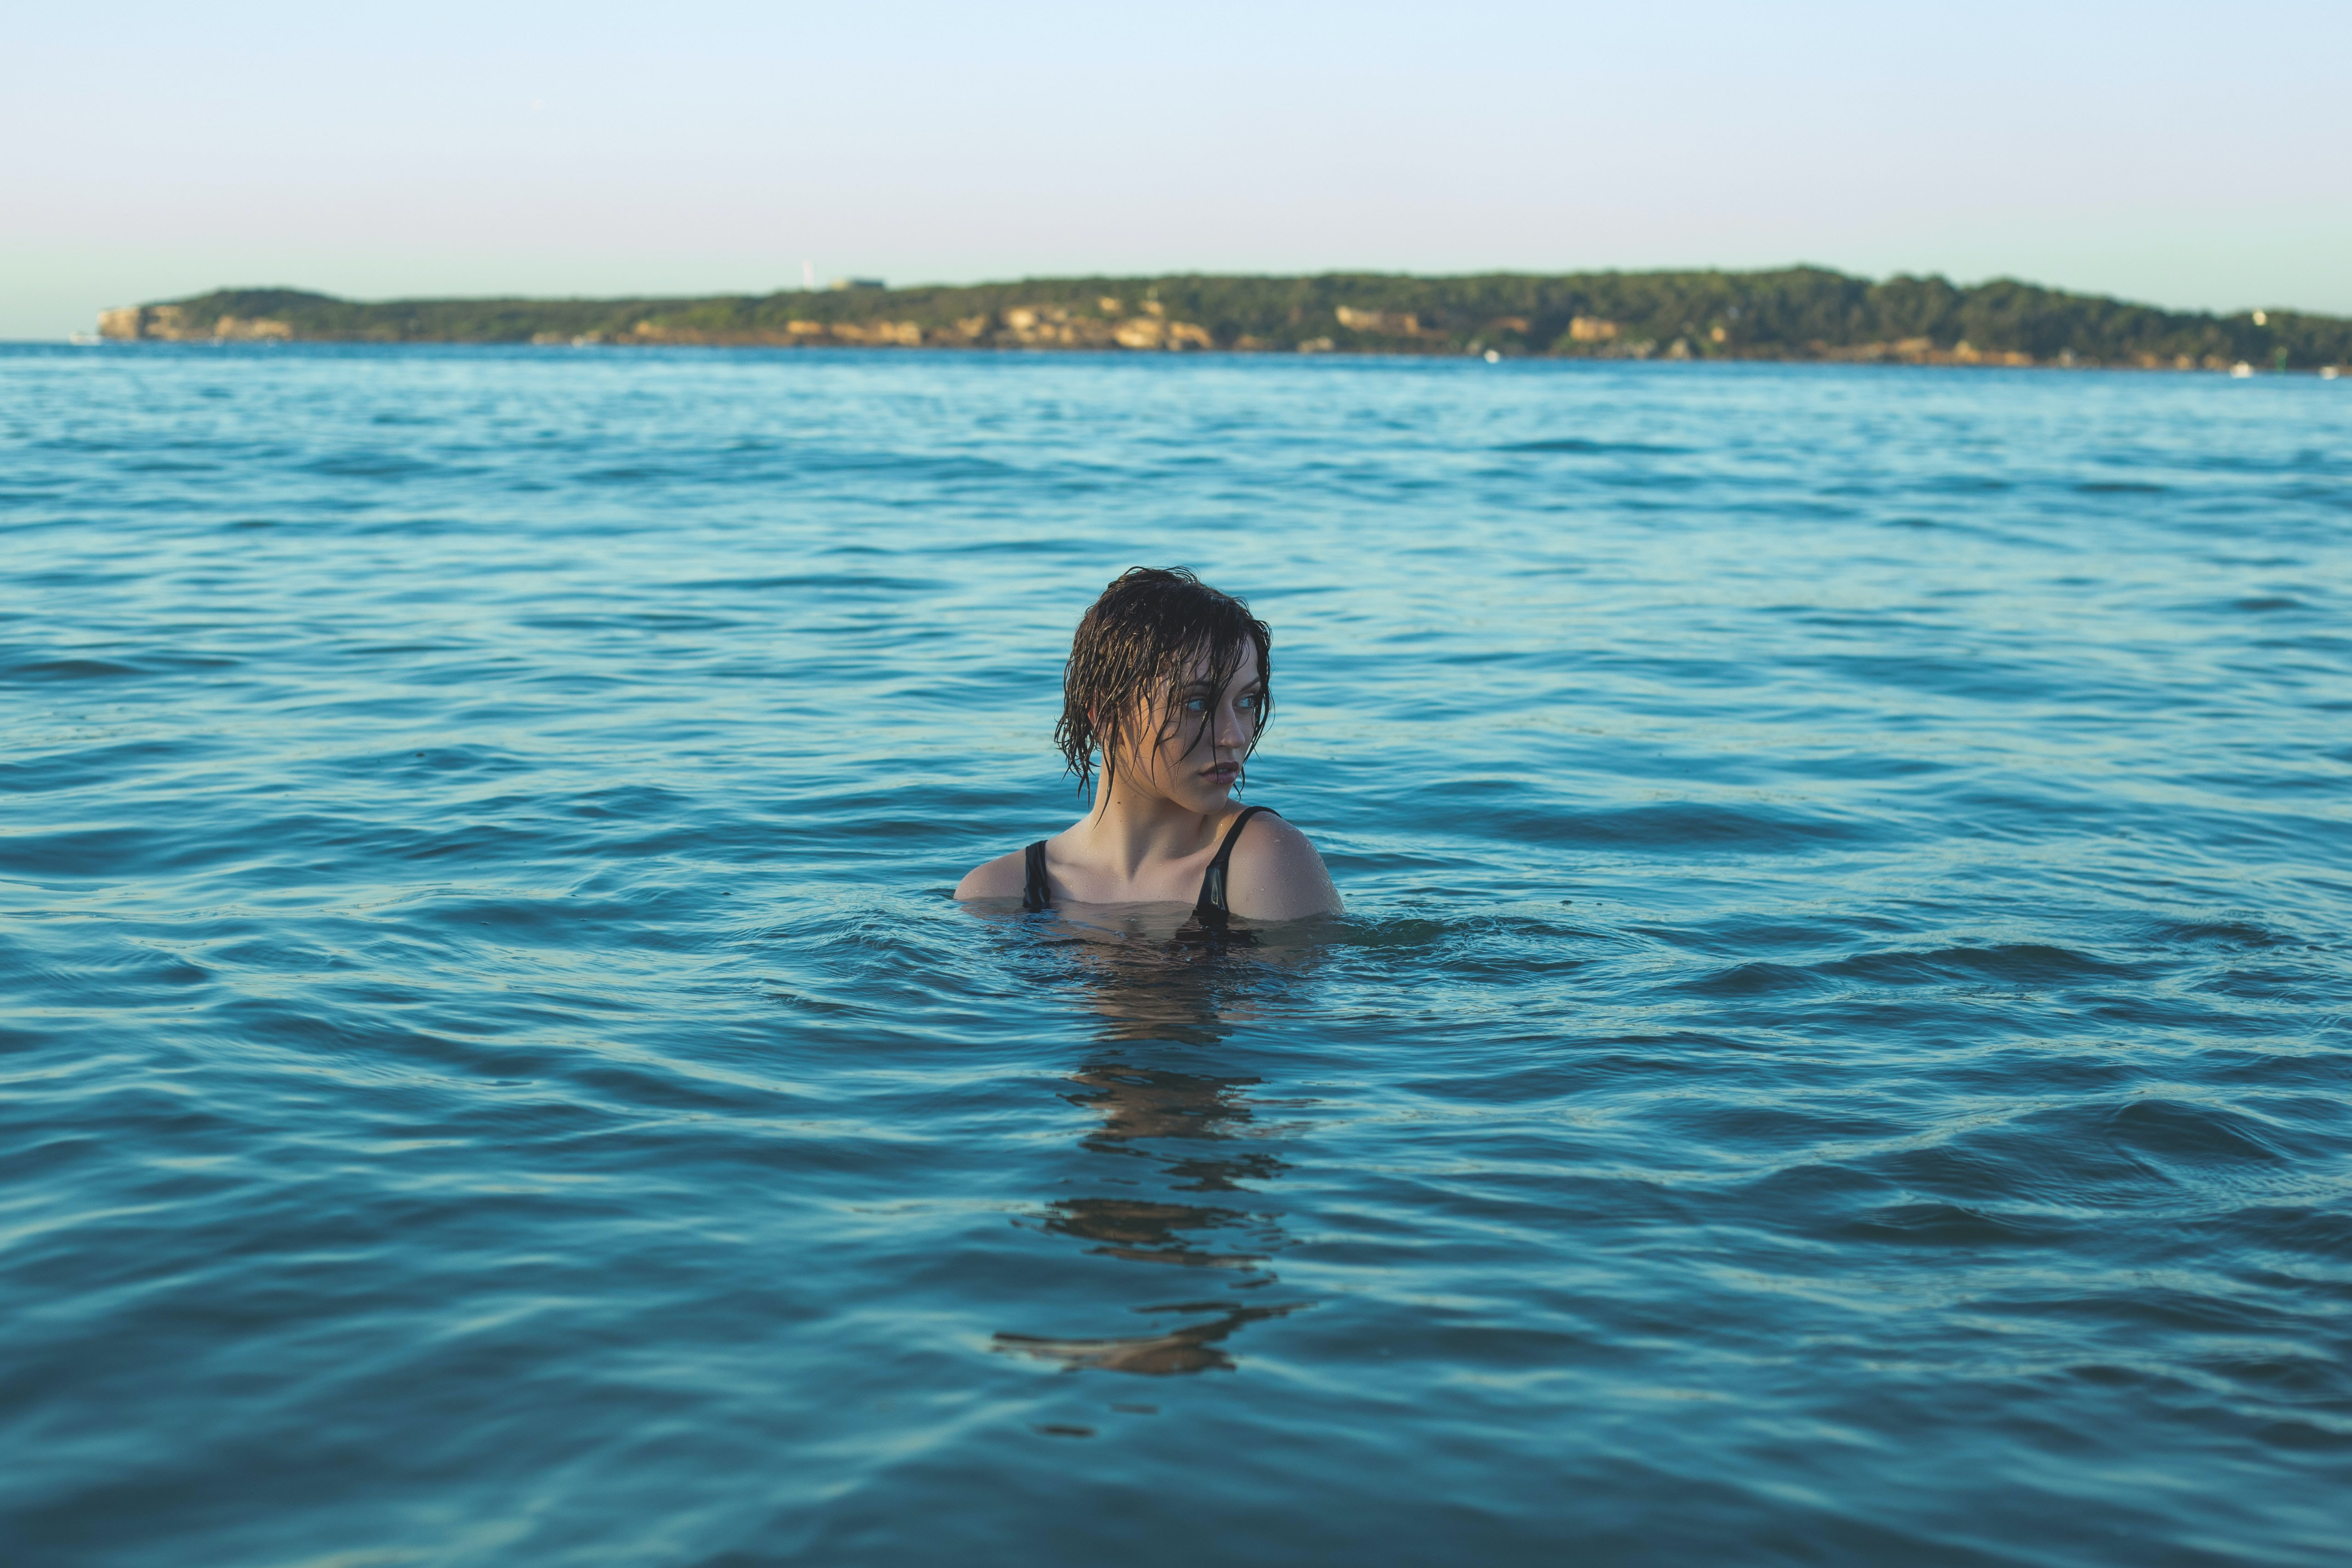 A young woman swimming in the sea with the coast visible on the horizon